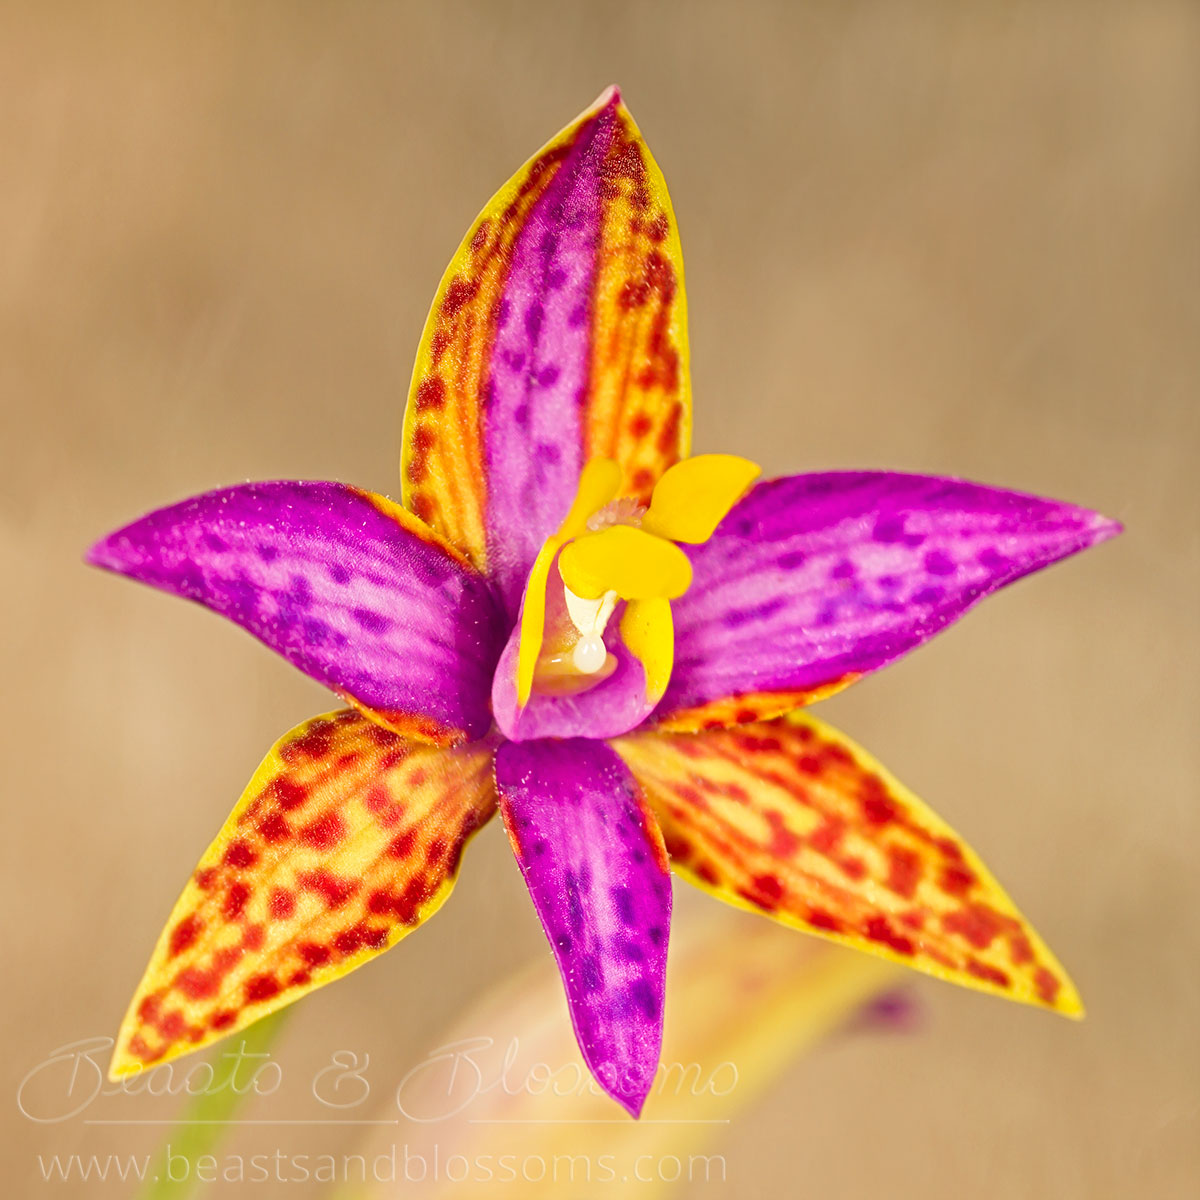 South west WA wildflower: northern Queen of Sheba orchid (Thelymitra pulcherrima), Near Threatened (Priority 2) flora